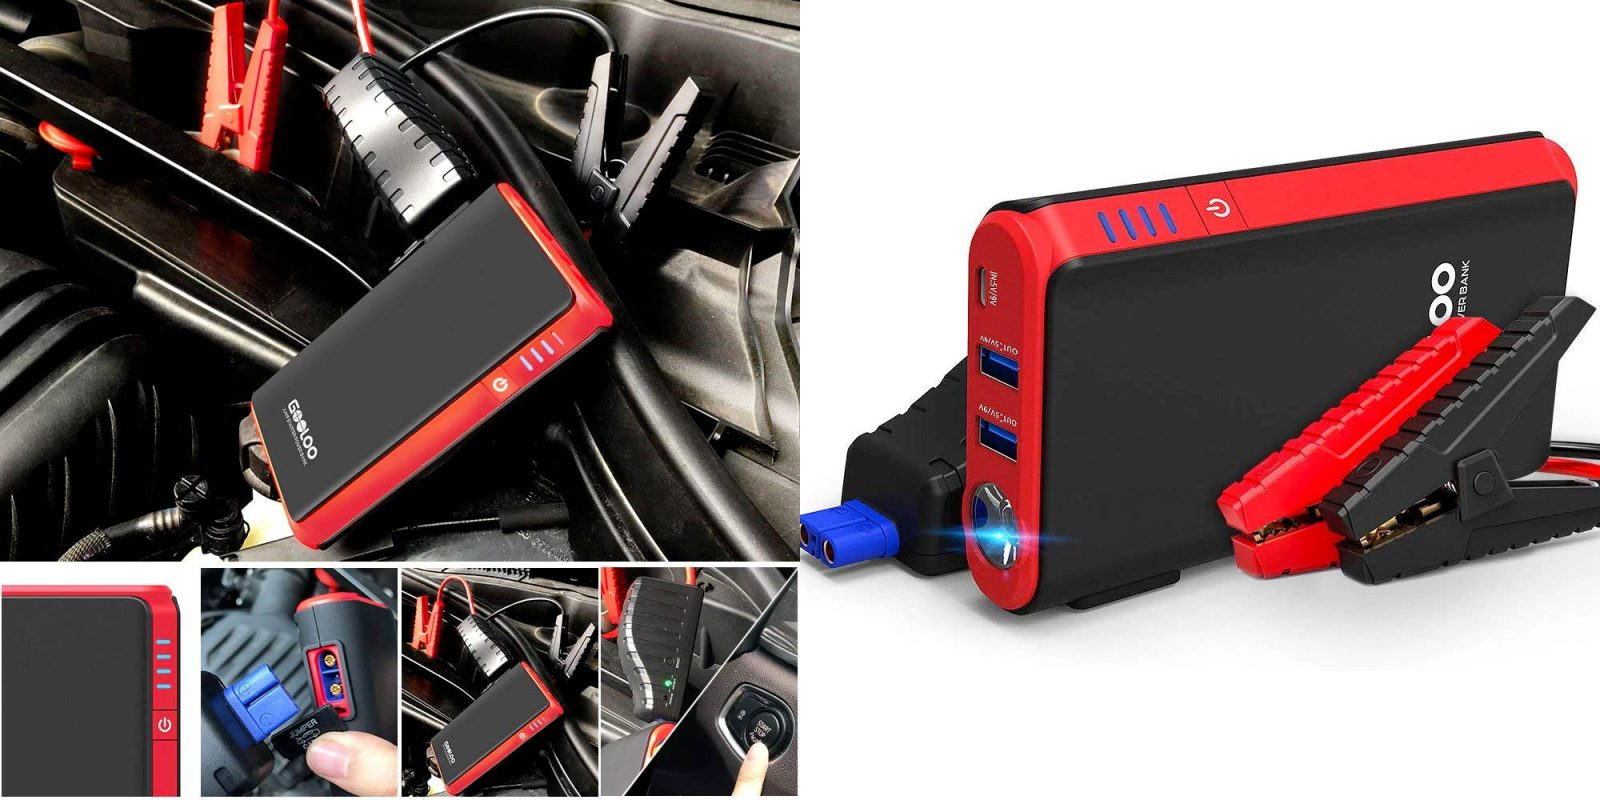 Never let a dead battery strand you, this 500A jump starter is $30 (Reg. $50)